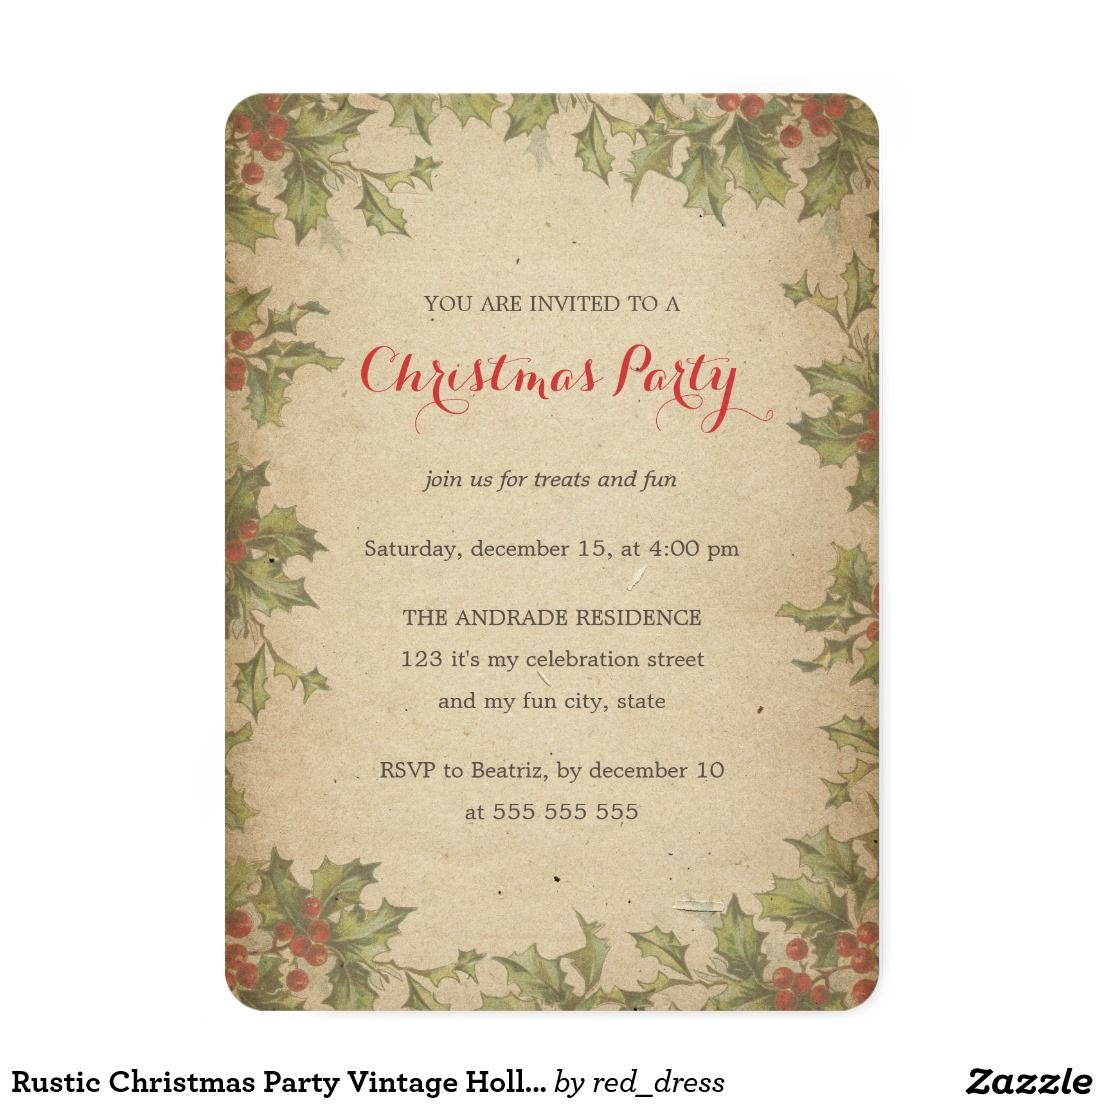 Rustic Christmas Party Vintage Holly Wreath Border Card | Christmas ...